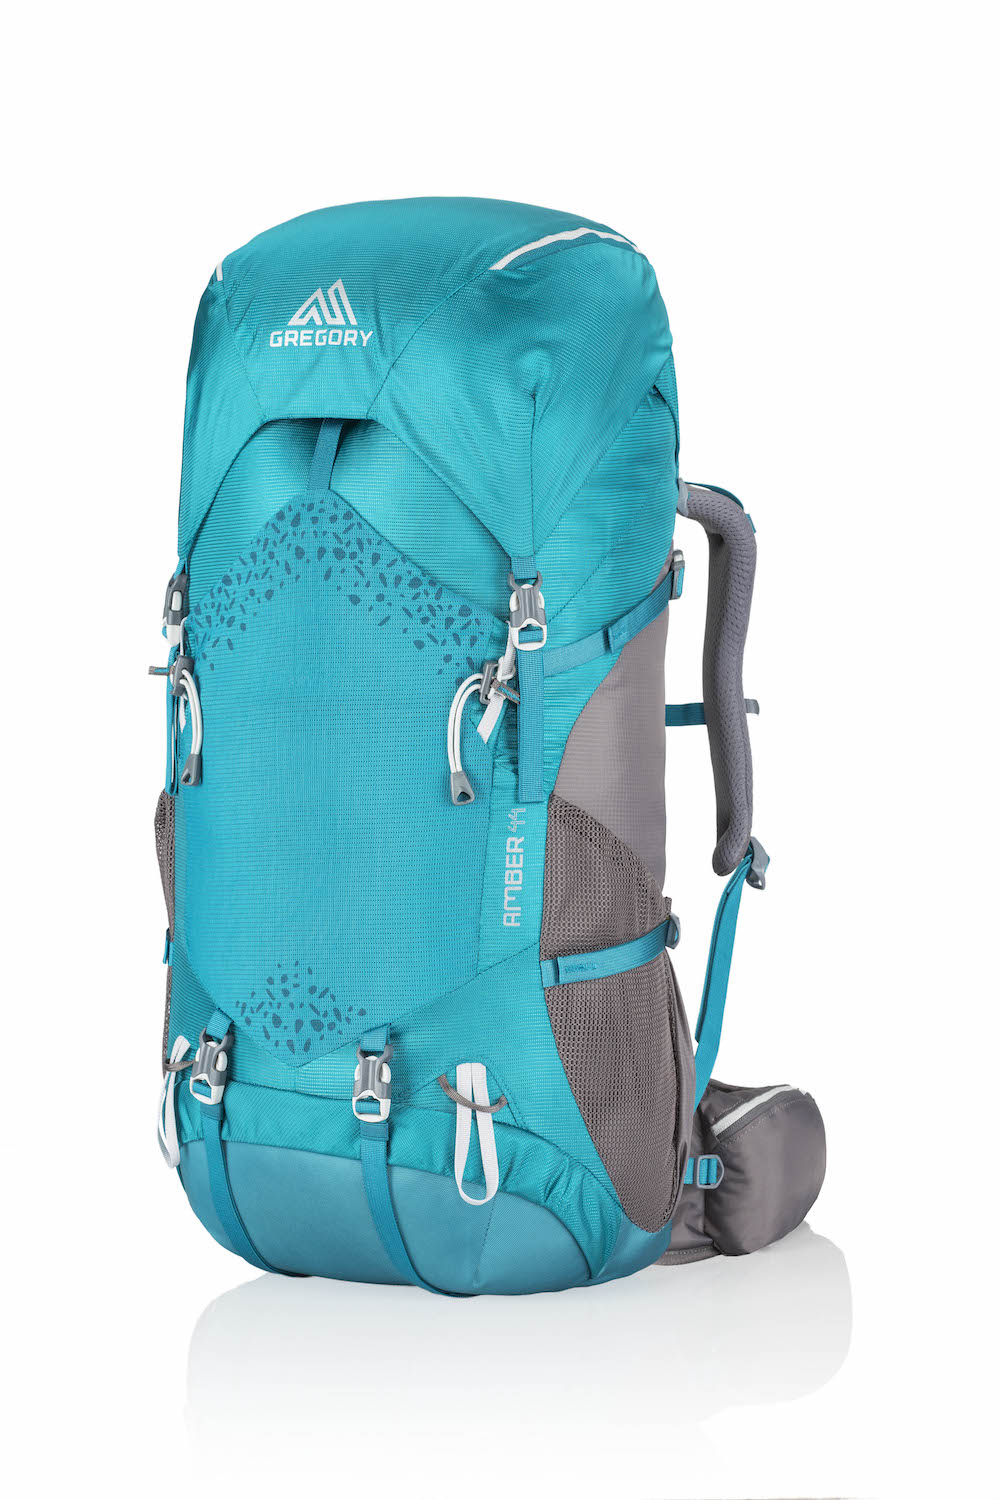 Gregory Amber 44 - Hiking backpack - Women's